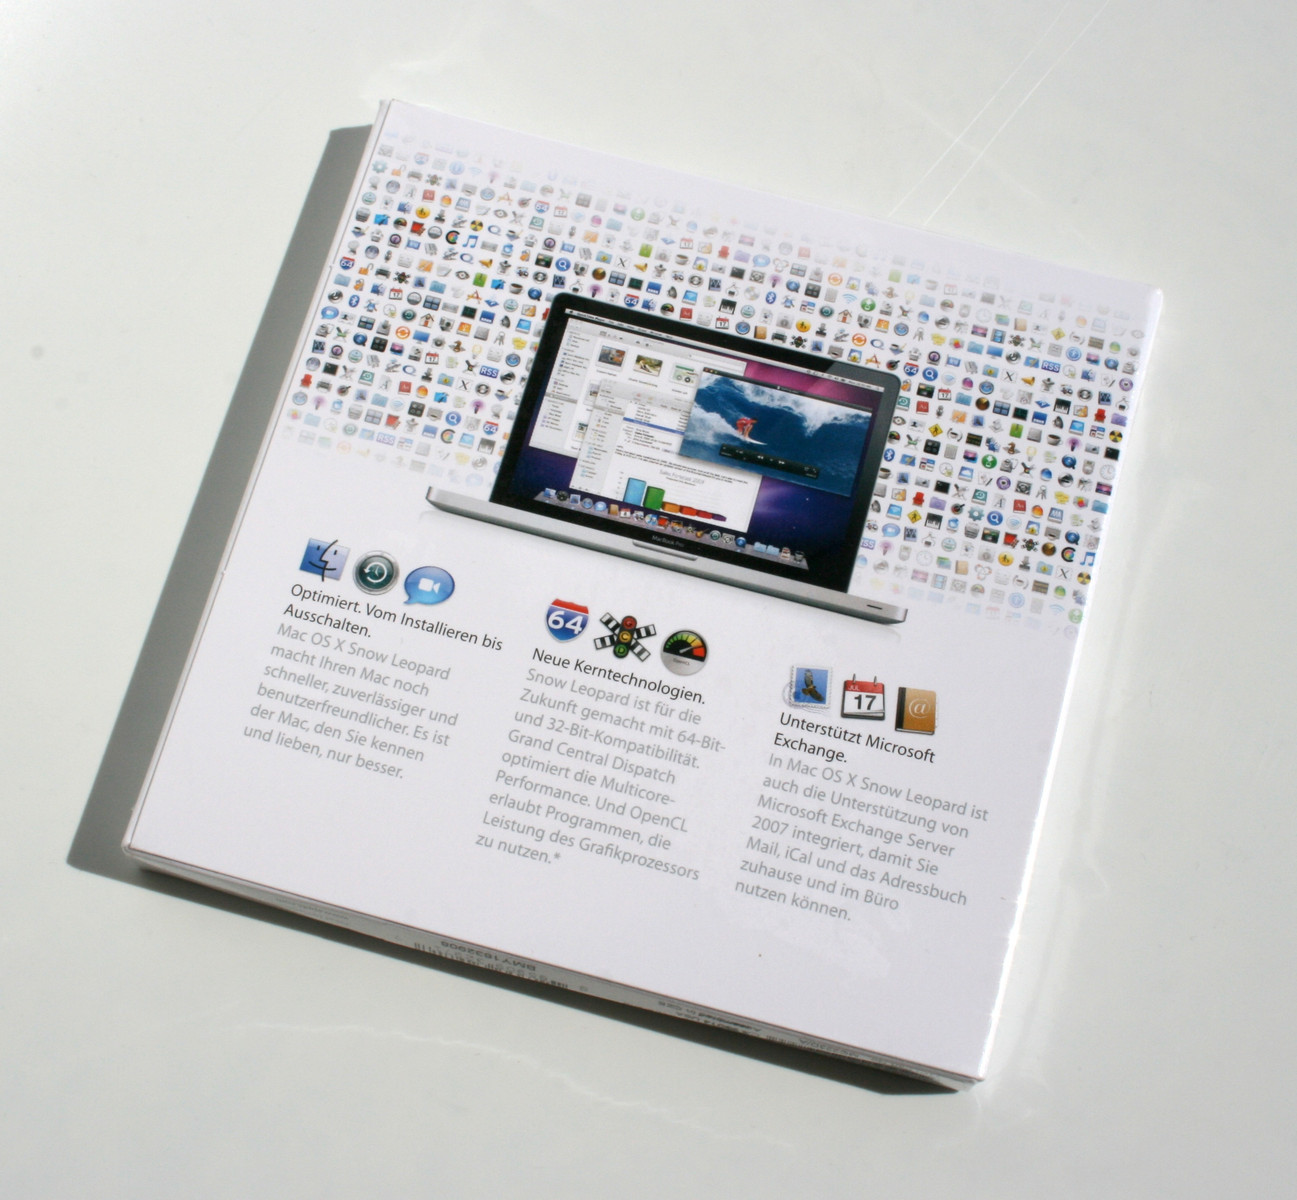 Mac OS X 10 6 Snow Leopard in Review - NotebookCheck net Reviews